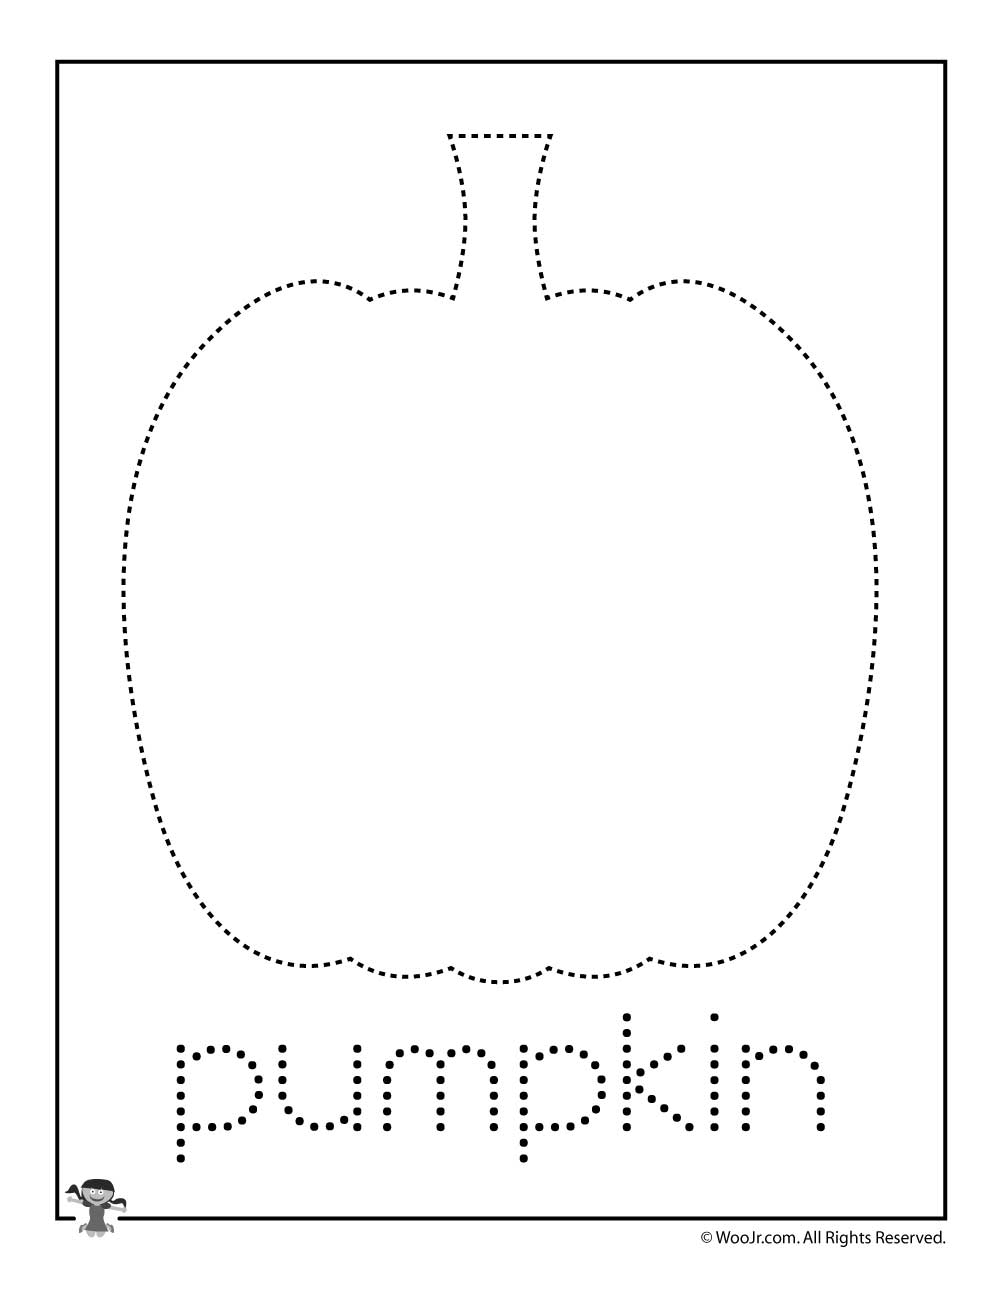 Pumpkin Letter Tracing Practice | Woo! Jr. Kids Activities within Halloween Tracing Letters